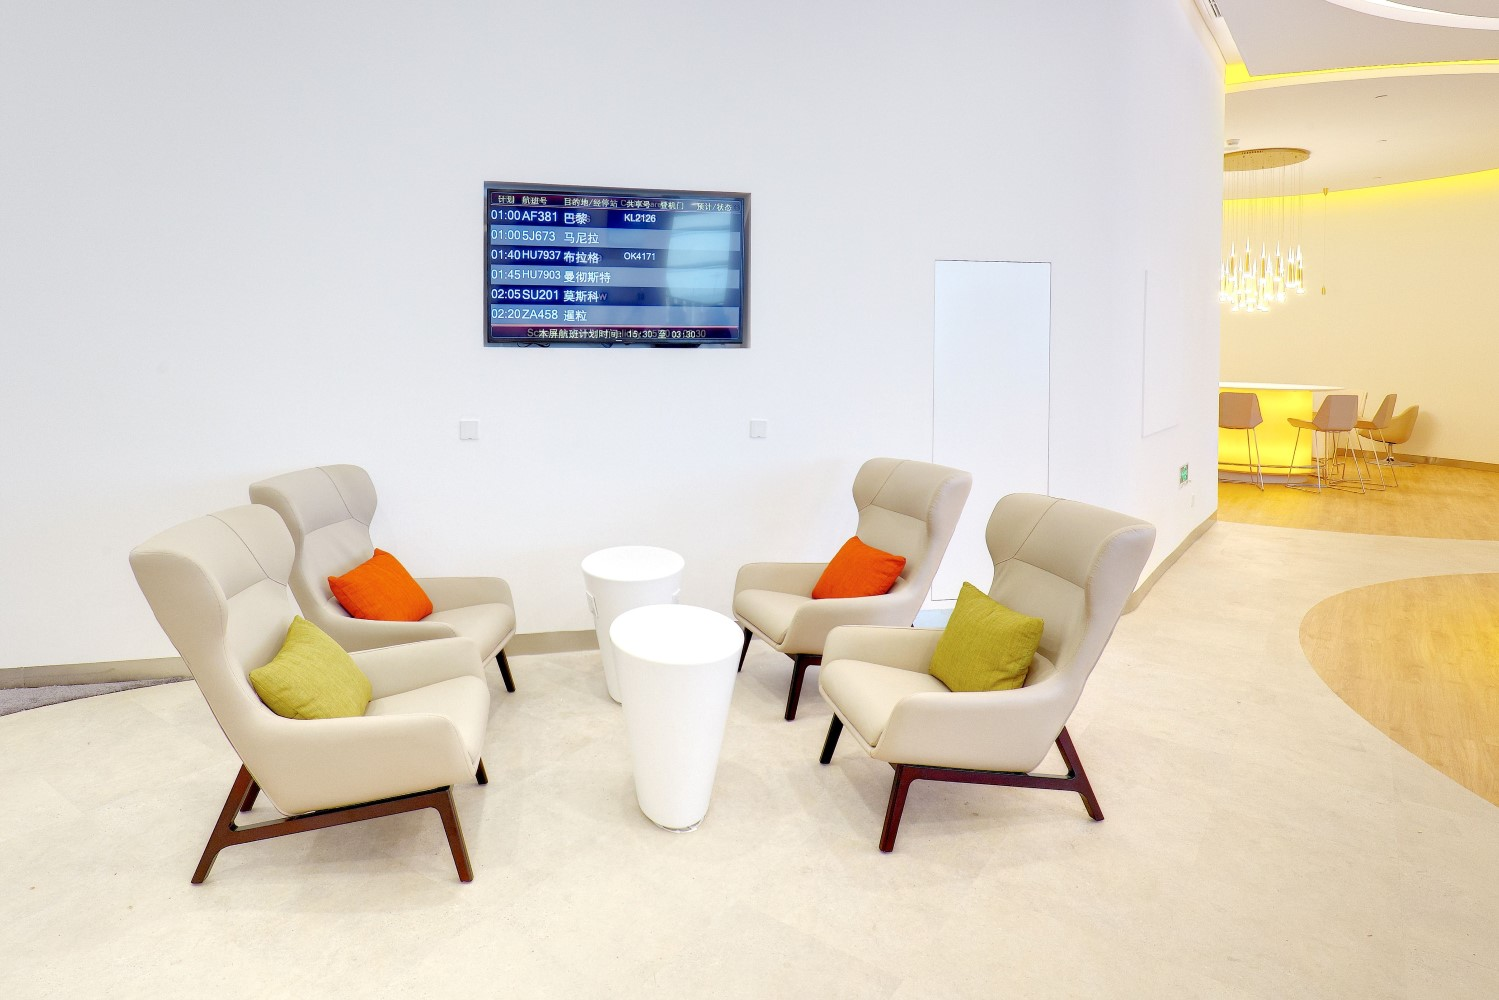 Some parts of the lounge feel a little sparse and under designed. Image: SkyTeam